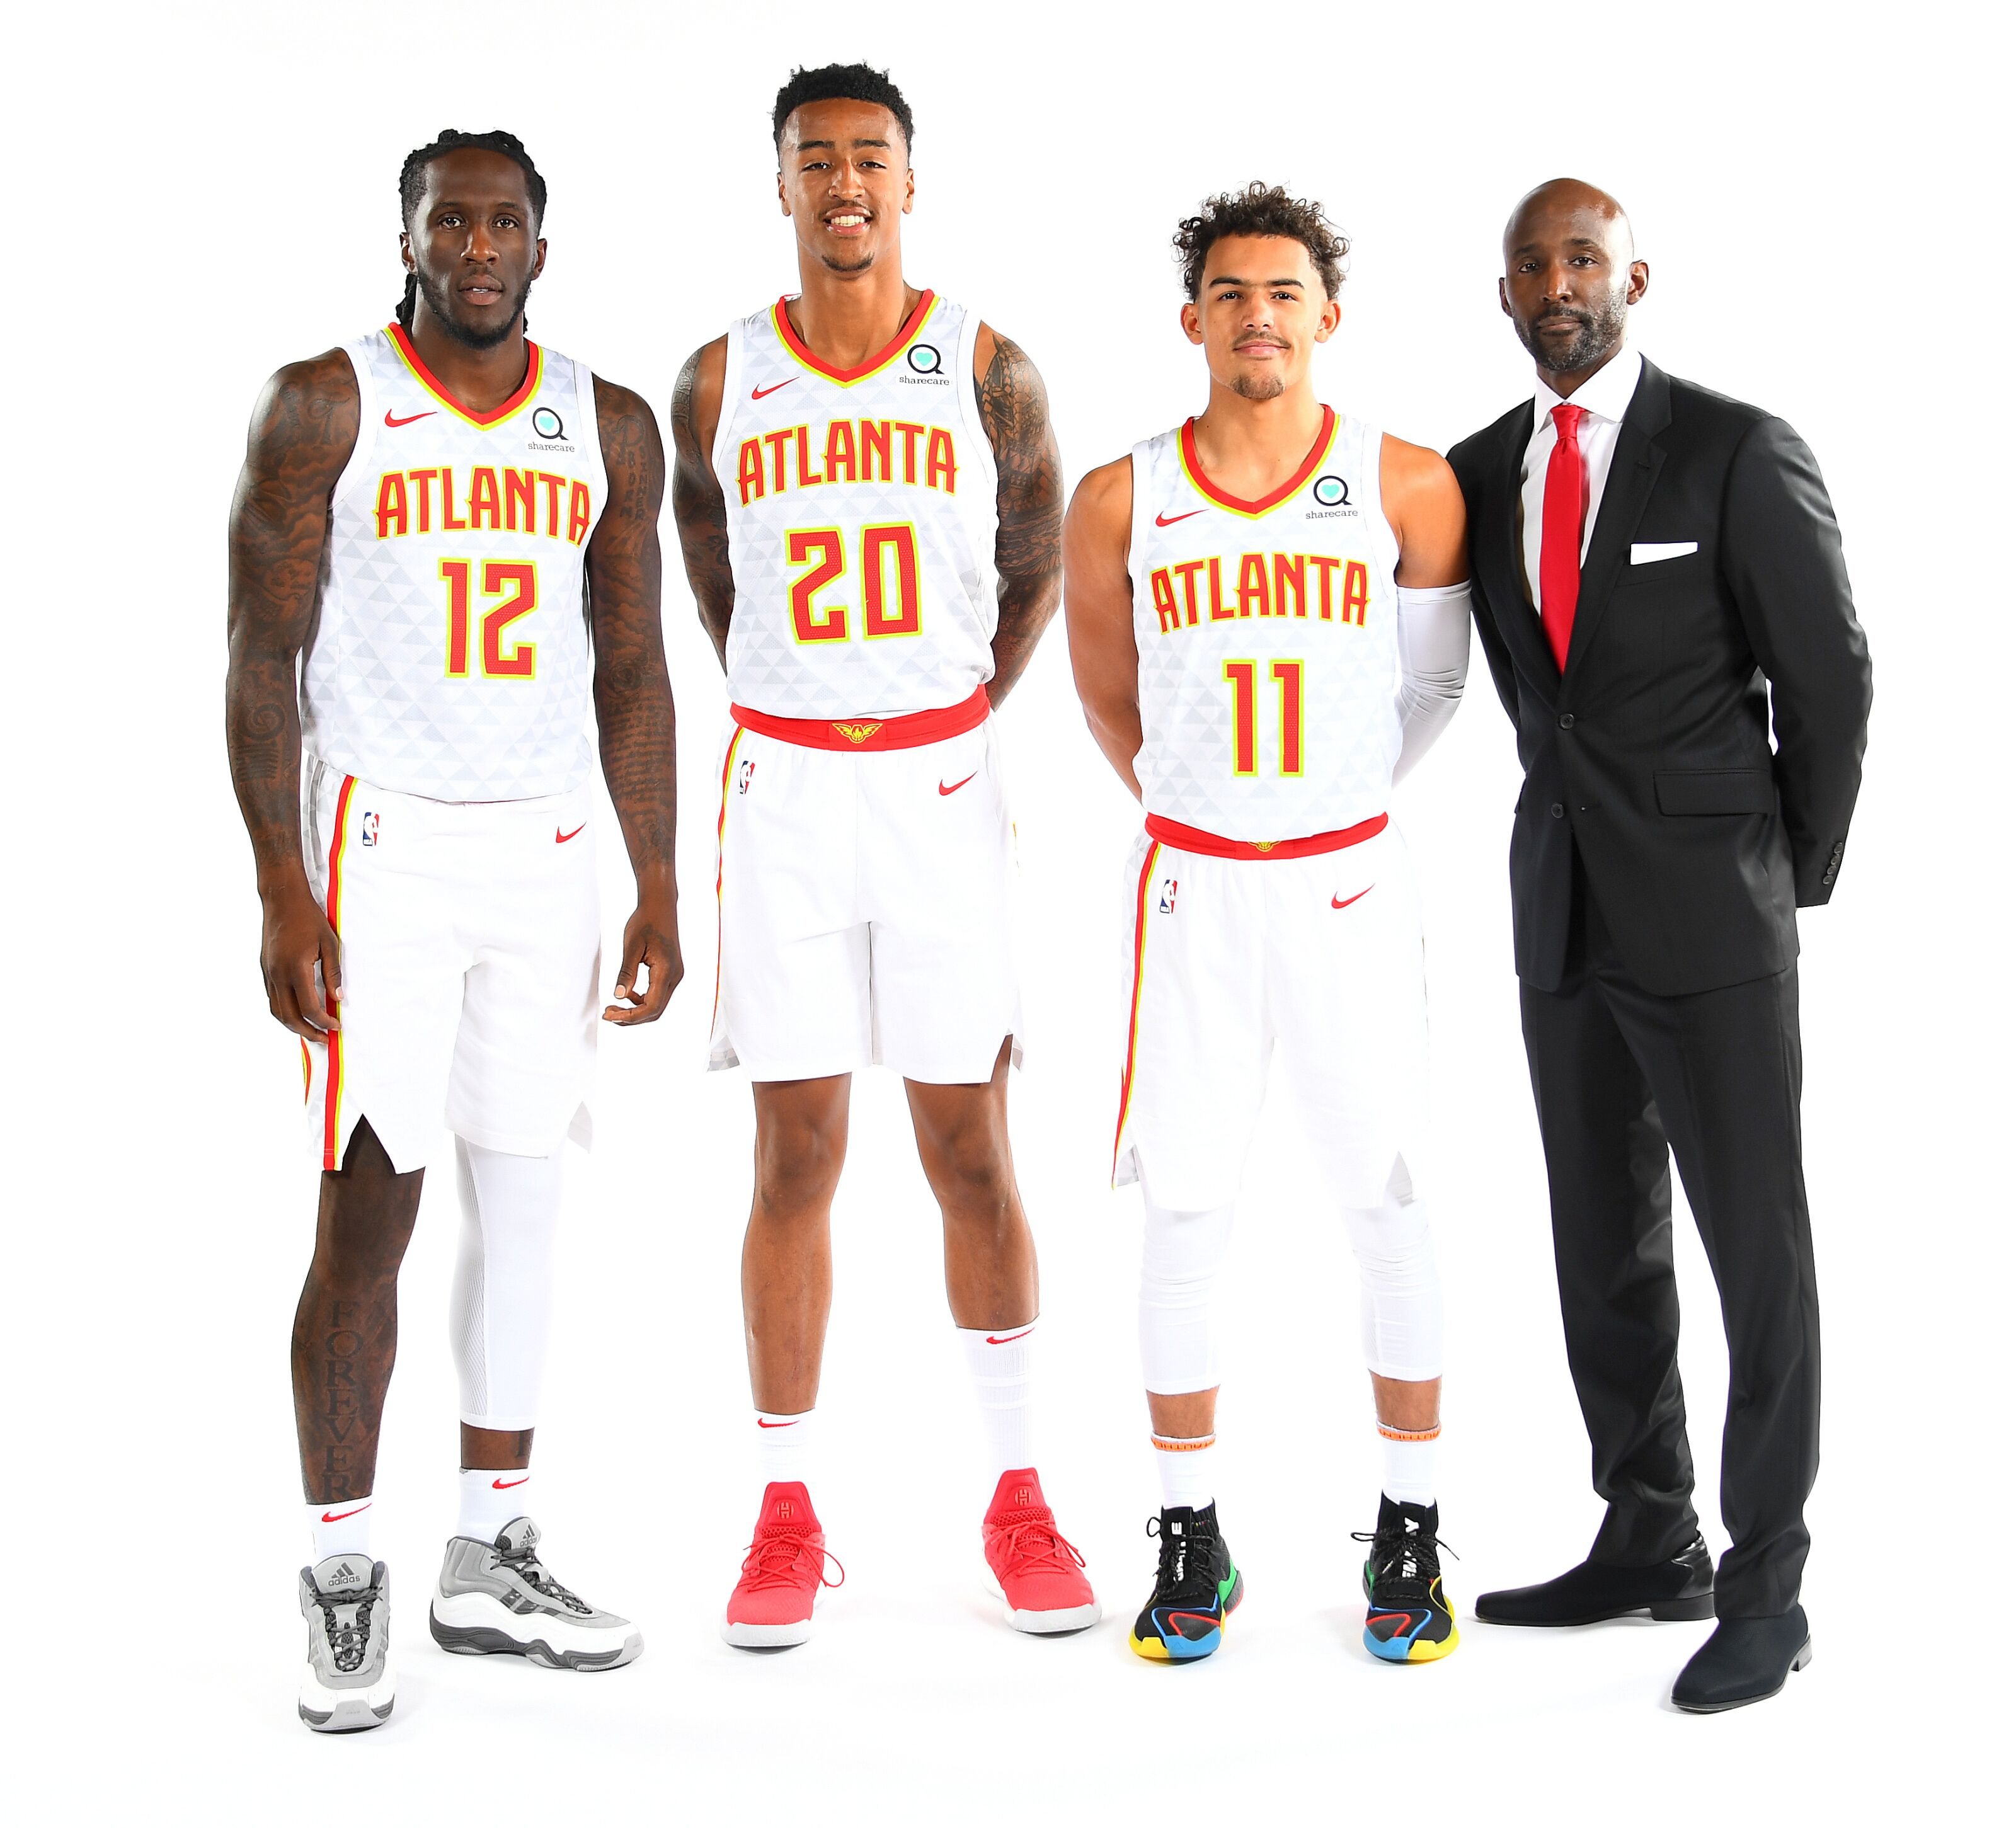 Rockets Vs Warriors 2018 19: Atlanta Hawks: 5 Most Exciting Players To Watch In 2018-19